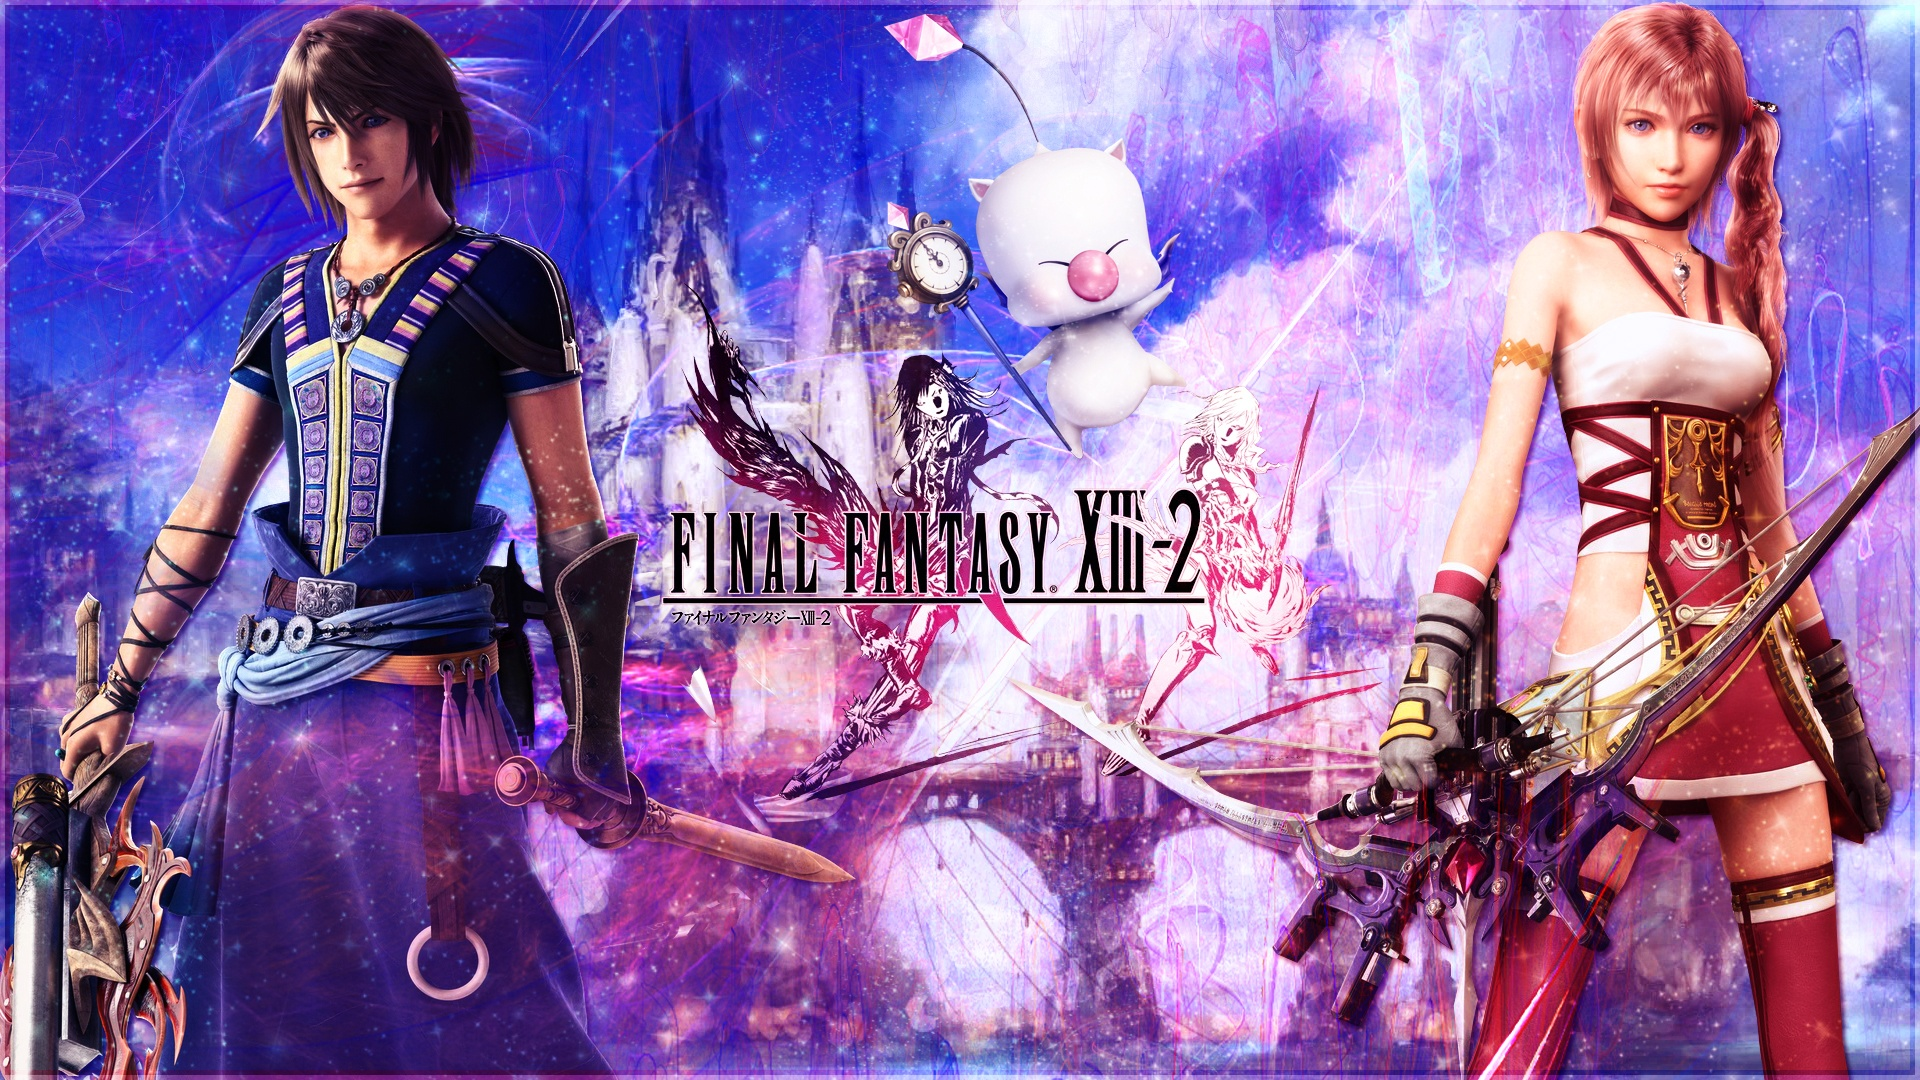 final fantasy xiii-2 wide 640x960 iphone 4/4s wallpaper, background